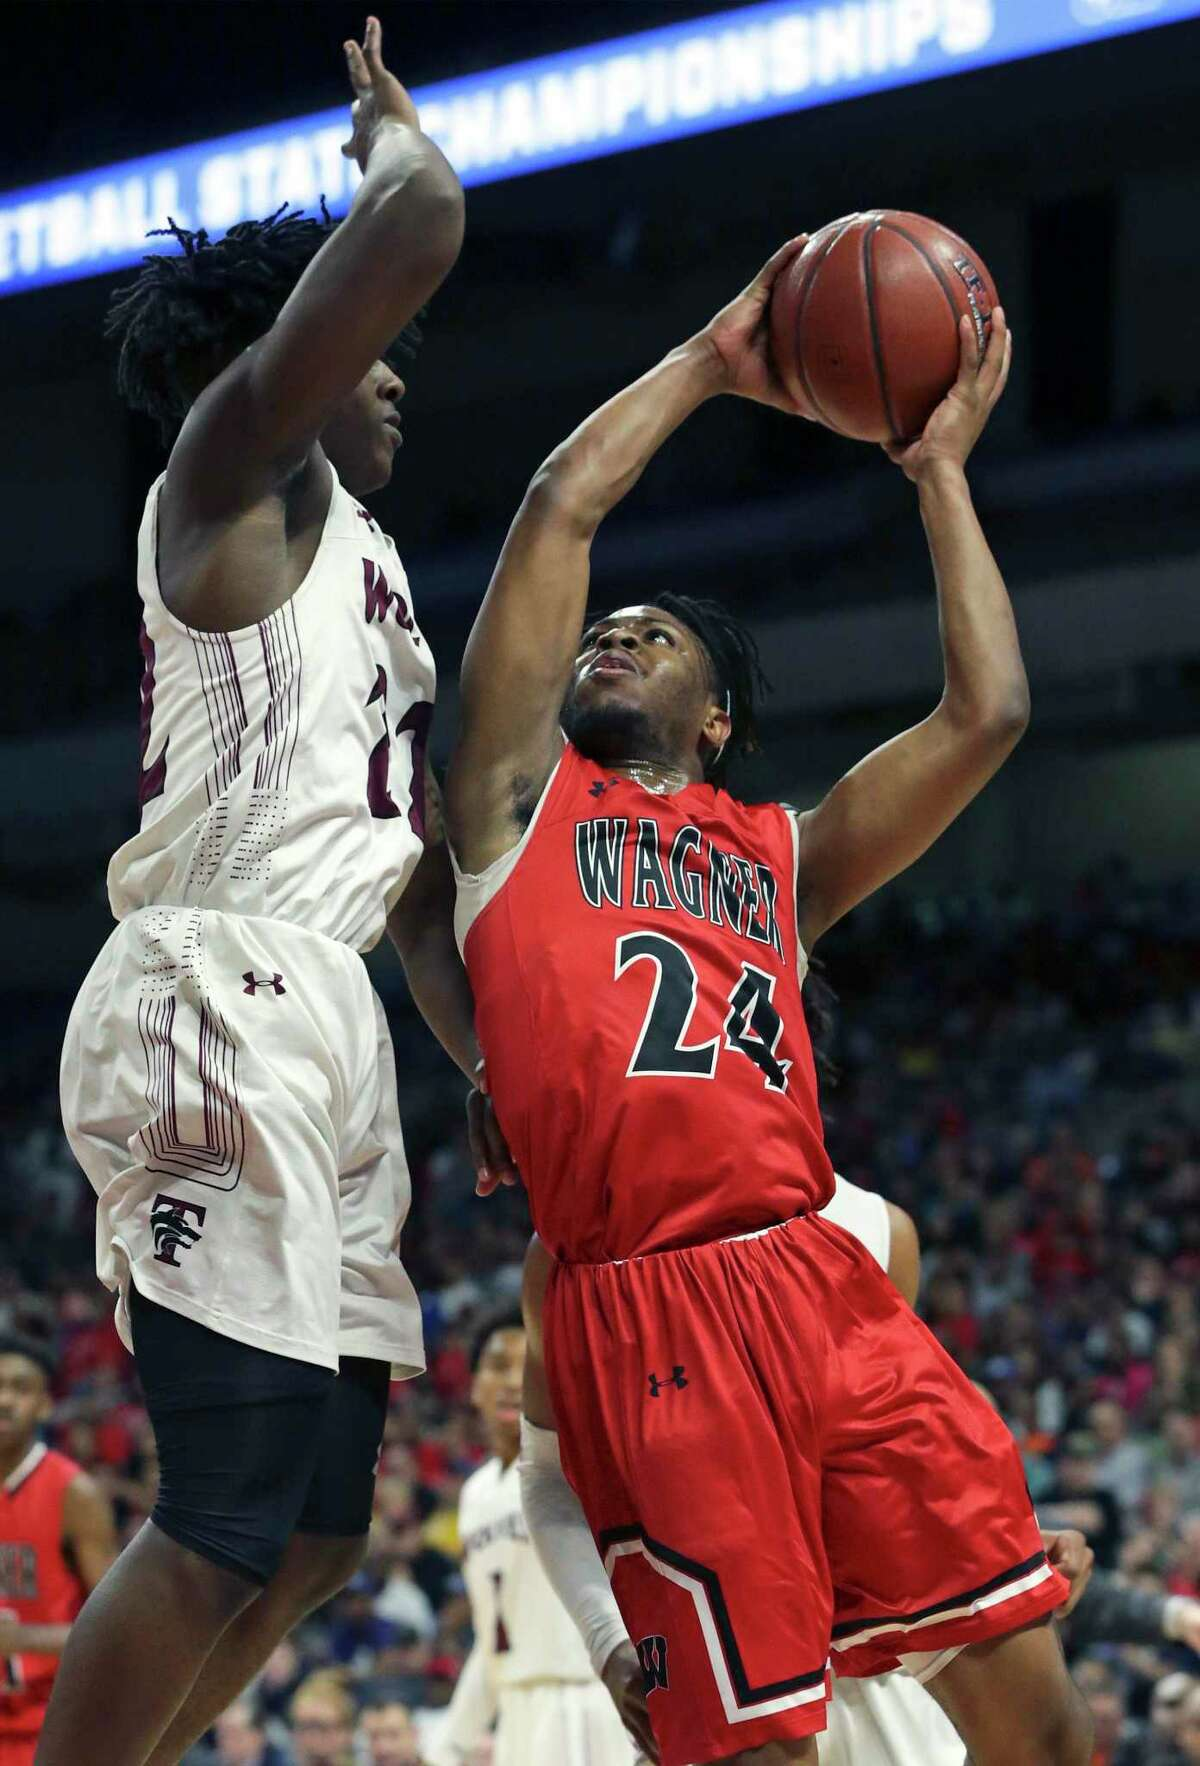 Journee Phillips takes the ball up on Dwaylen Russell as Wagner plays Mansfield Timberview in the Class 5A boys state final basketball game at the Alamodome on March 9, 2019.